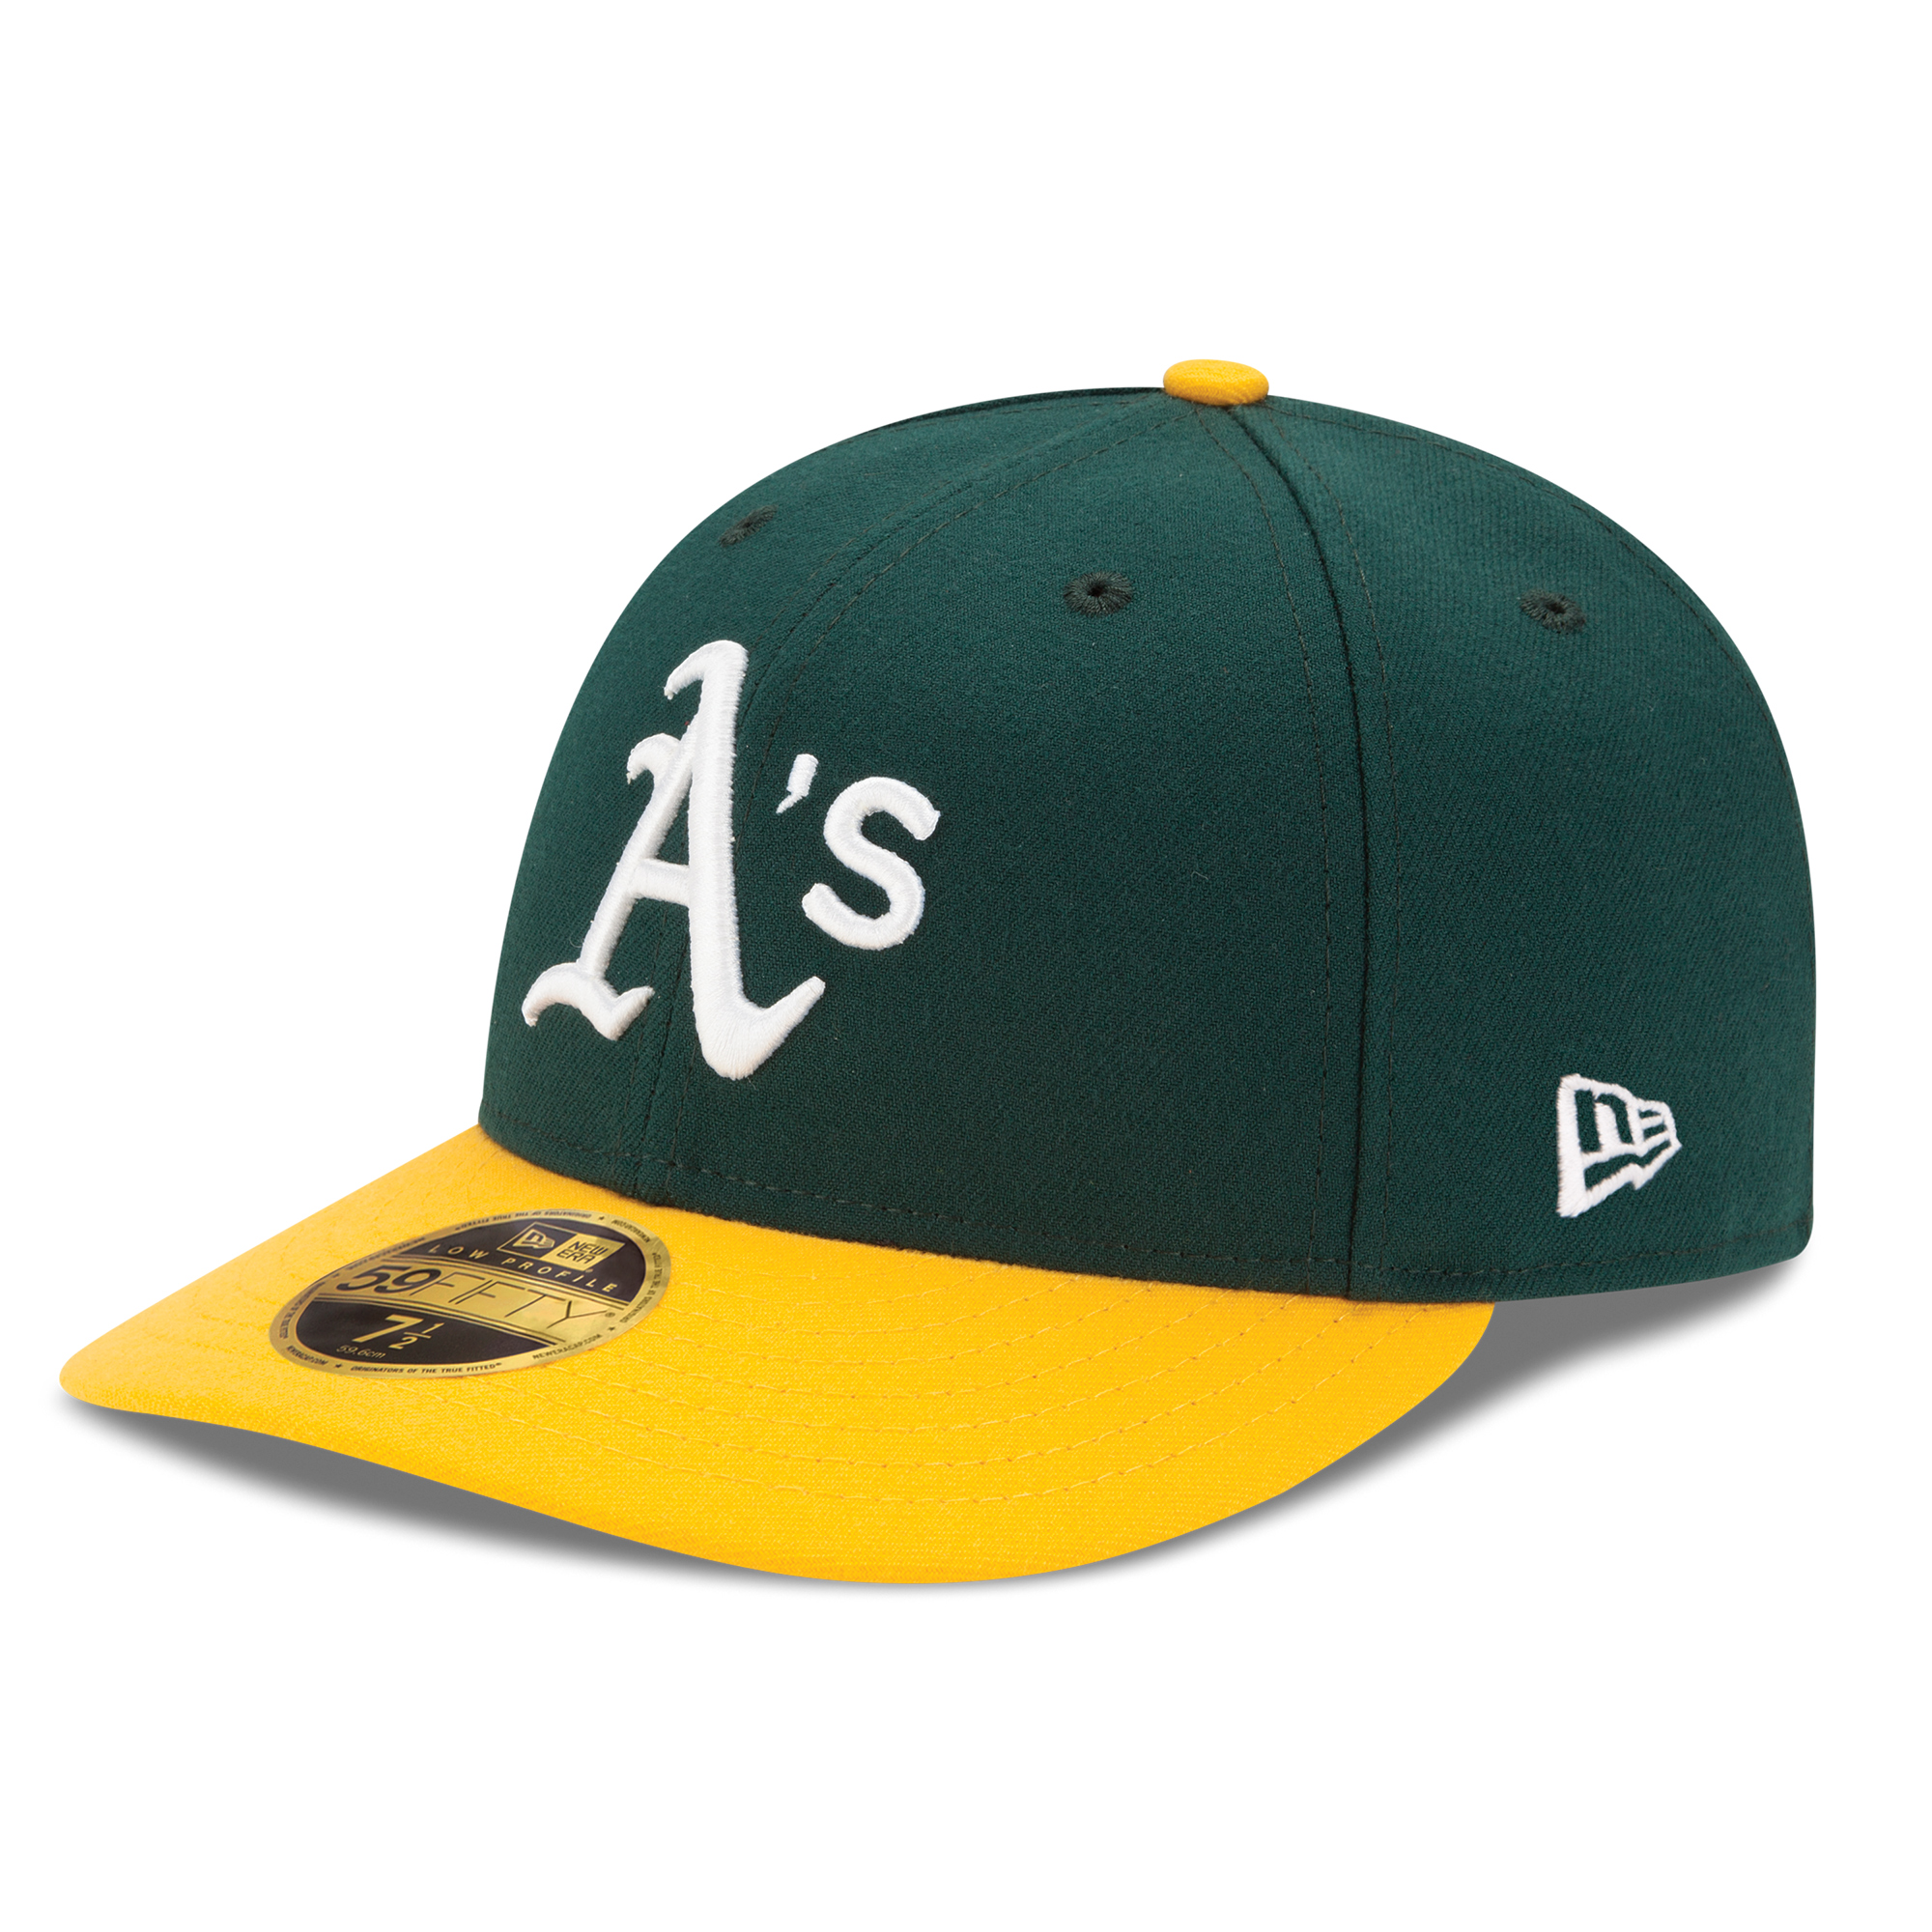 Oakland Athletics New Era Home Authentic Collection On-Field Low Profile 59FIFTY Fitted Hat - Green/Yellow